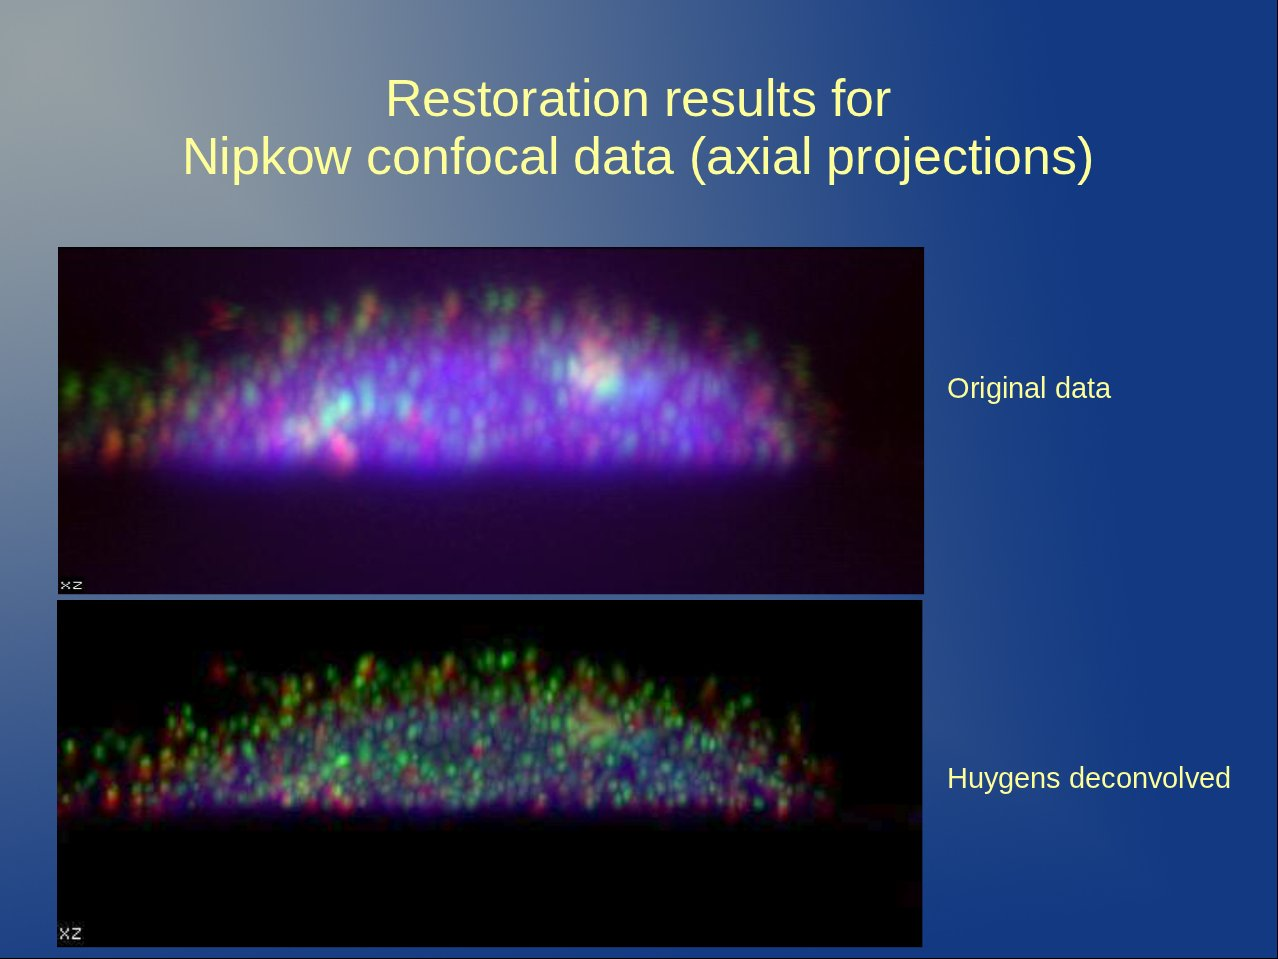 Top picture: XY projections and bottom picture: YZ, XZ projections. Original data as acquired in a Nipkow Disk Microscope shown next to the same image after applying Huygens Deconvolution. The red and green signals are clearly separated much more after the restoration. Calculating colocalization in the original data would have caused fake colocalization levels. Data courtesy Dr. Kozubek, Brno, Czech republic, FP6 3DGenome Project